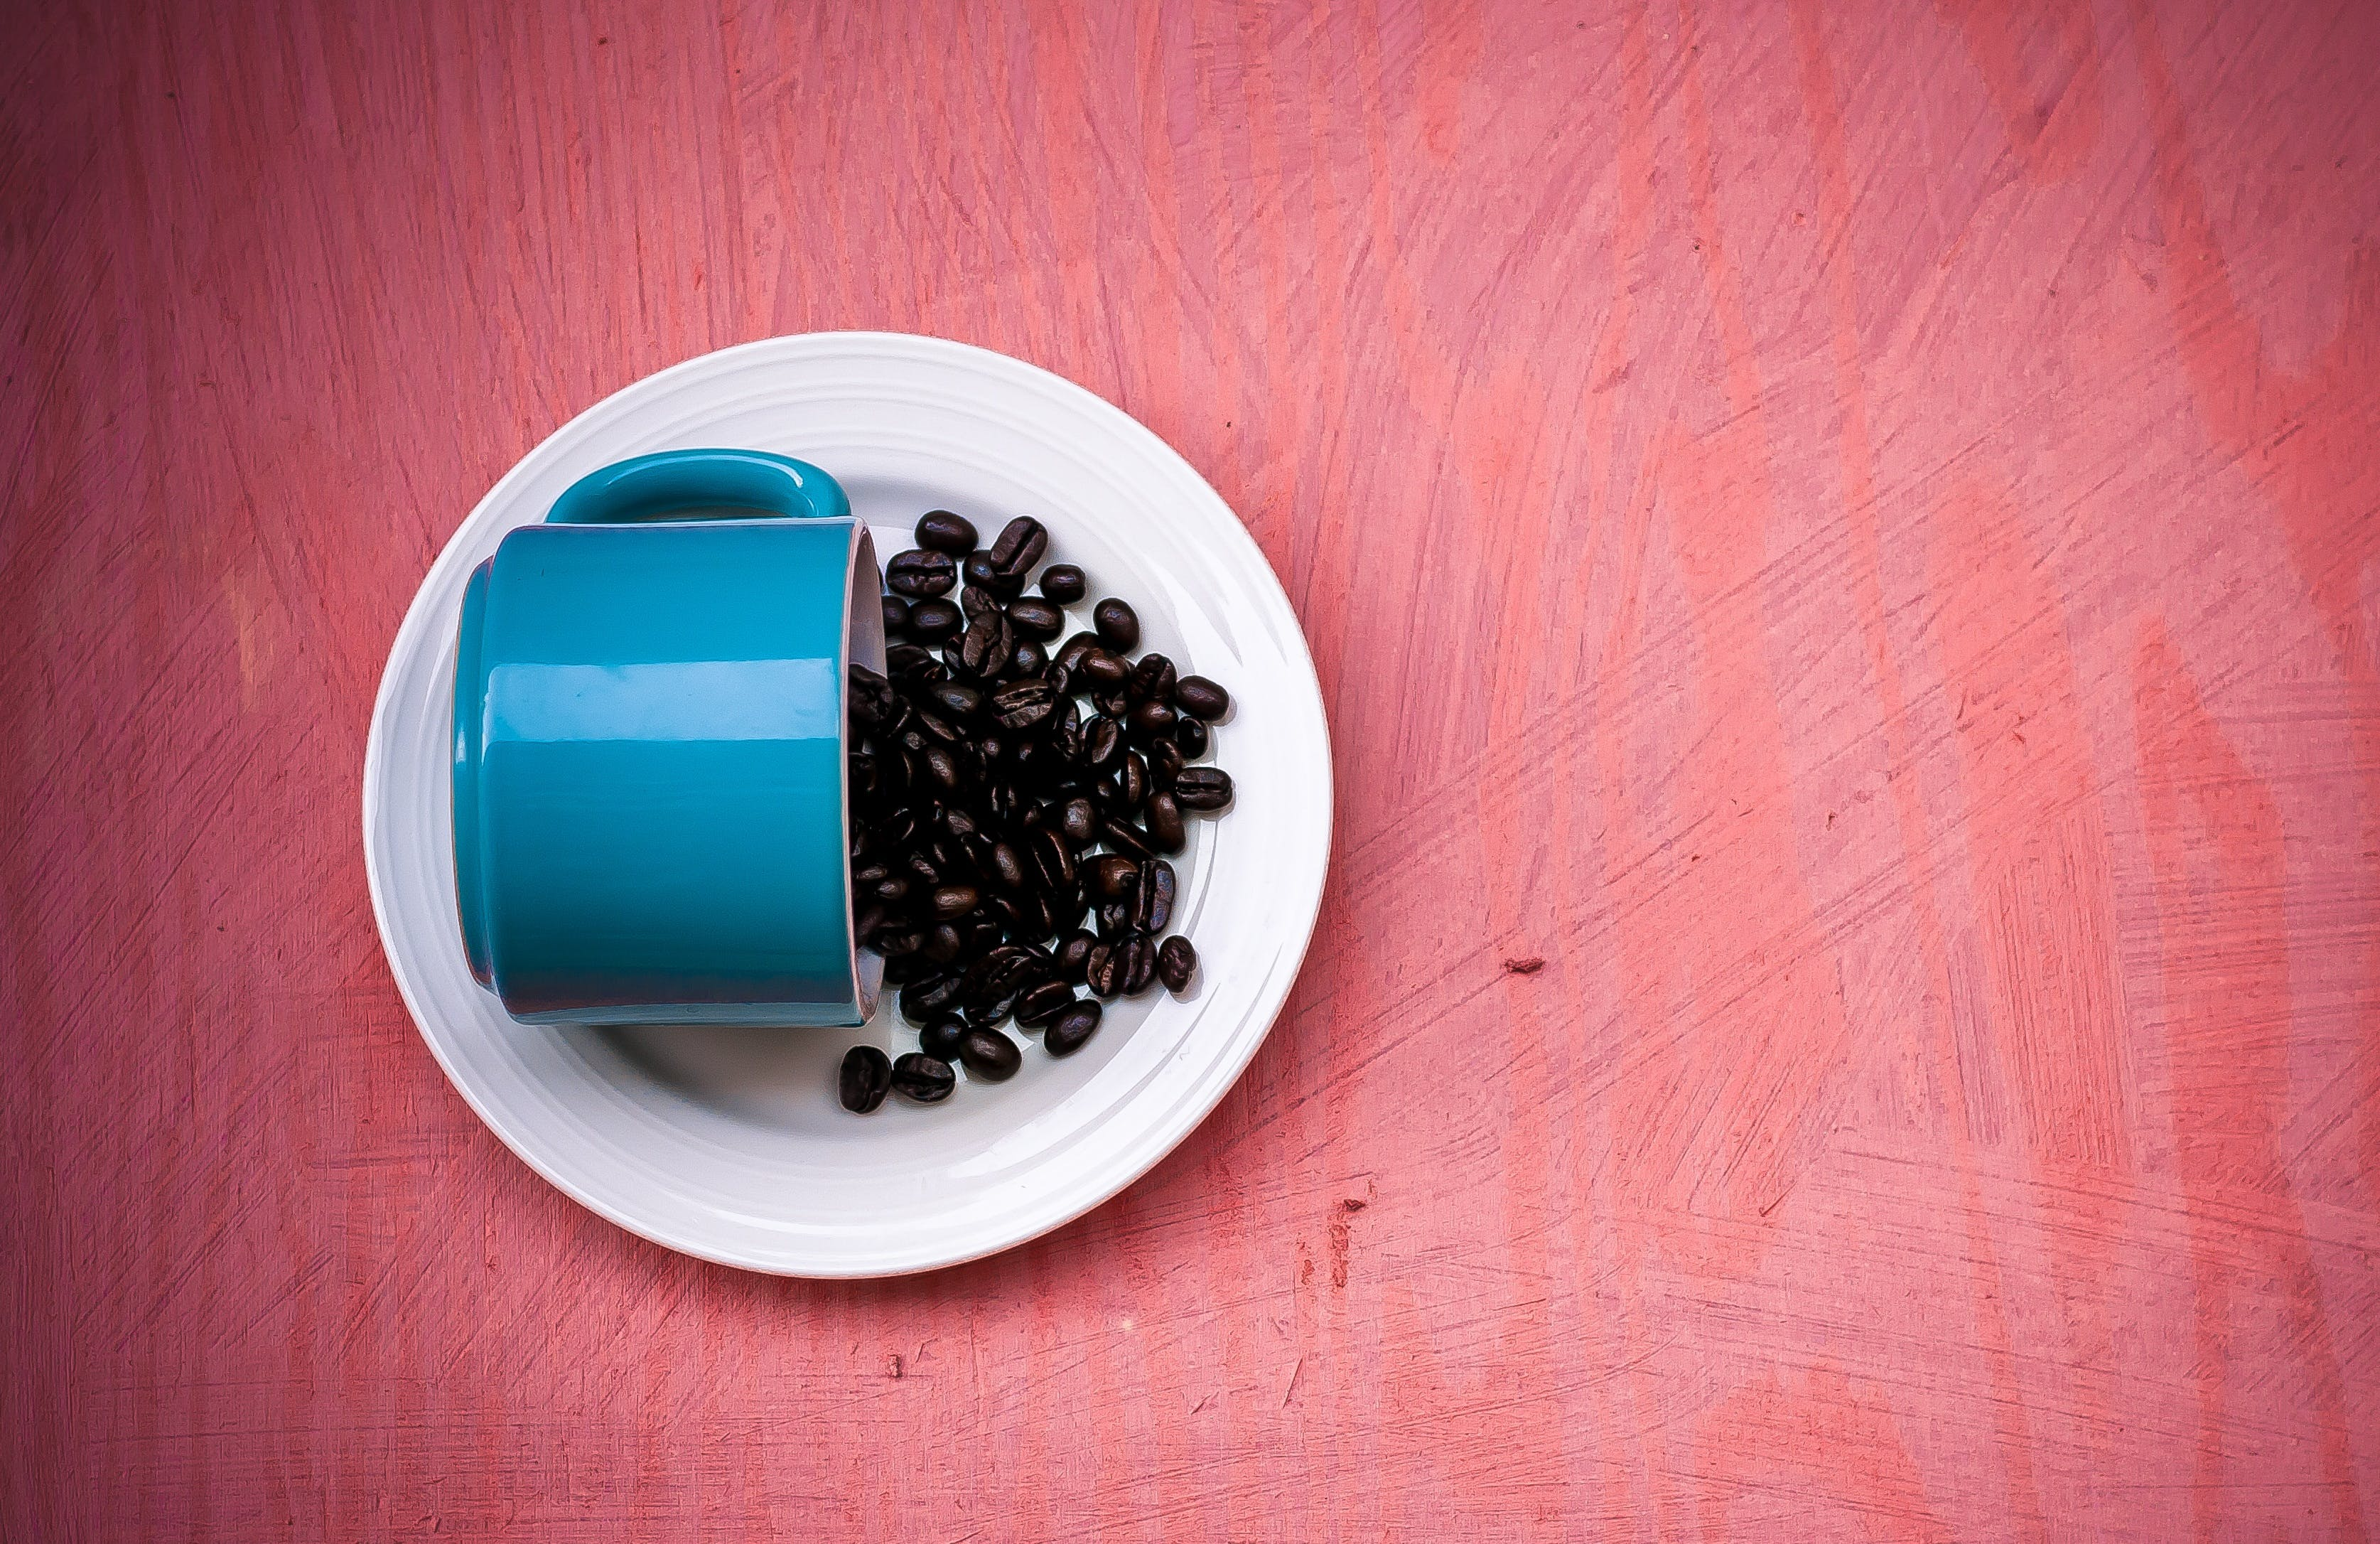 Blue Ceramic Tea Cup With Beans on Plate